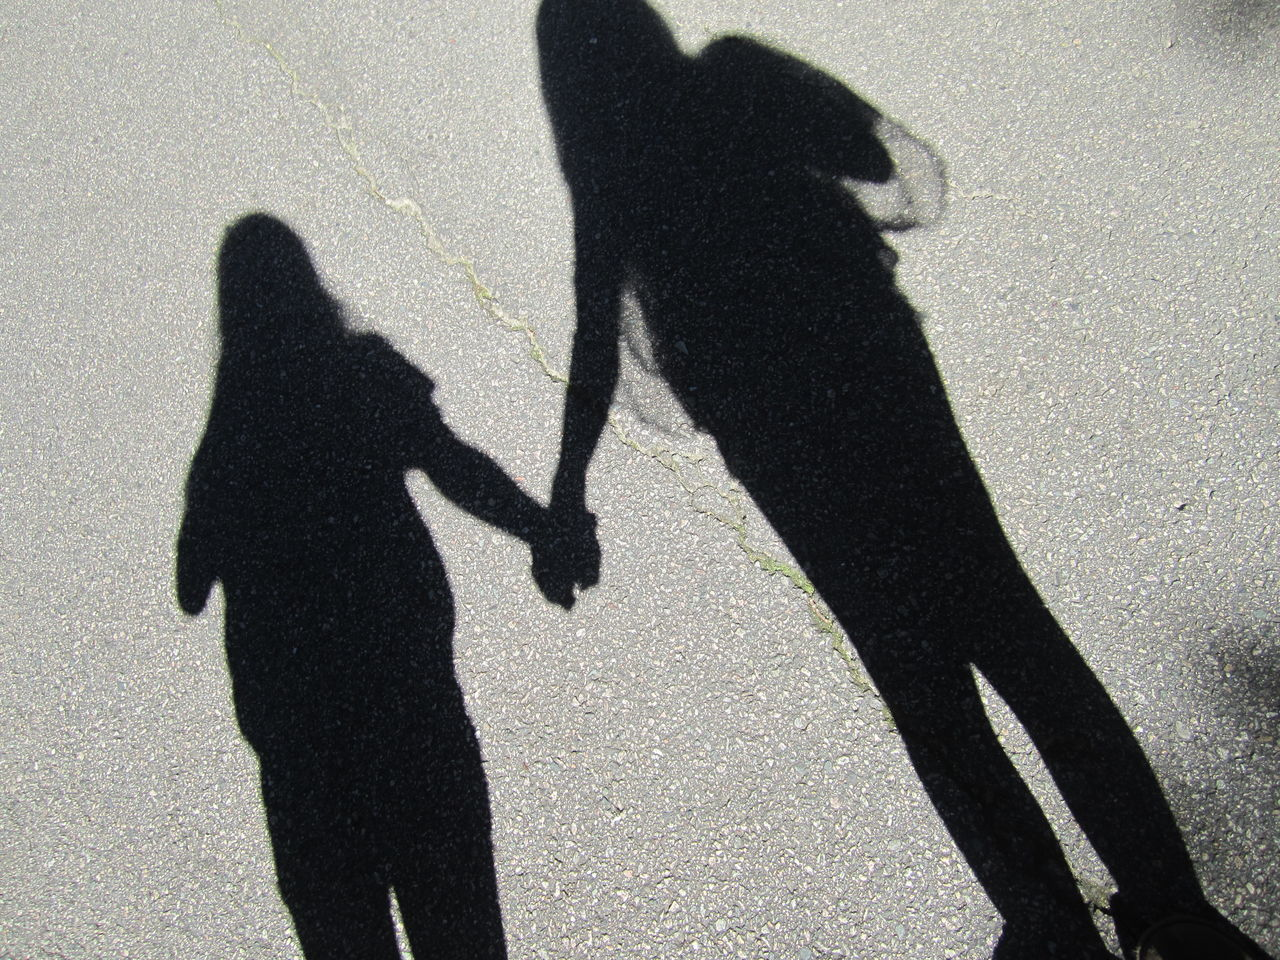 Shadow Of Female Friends Standing On Street